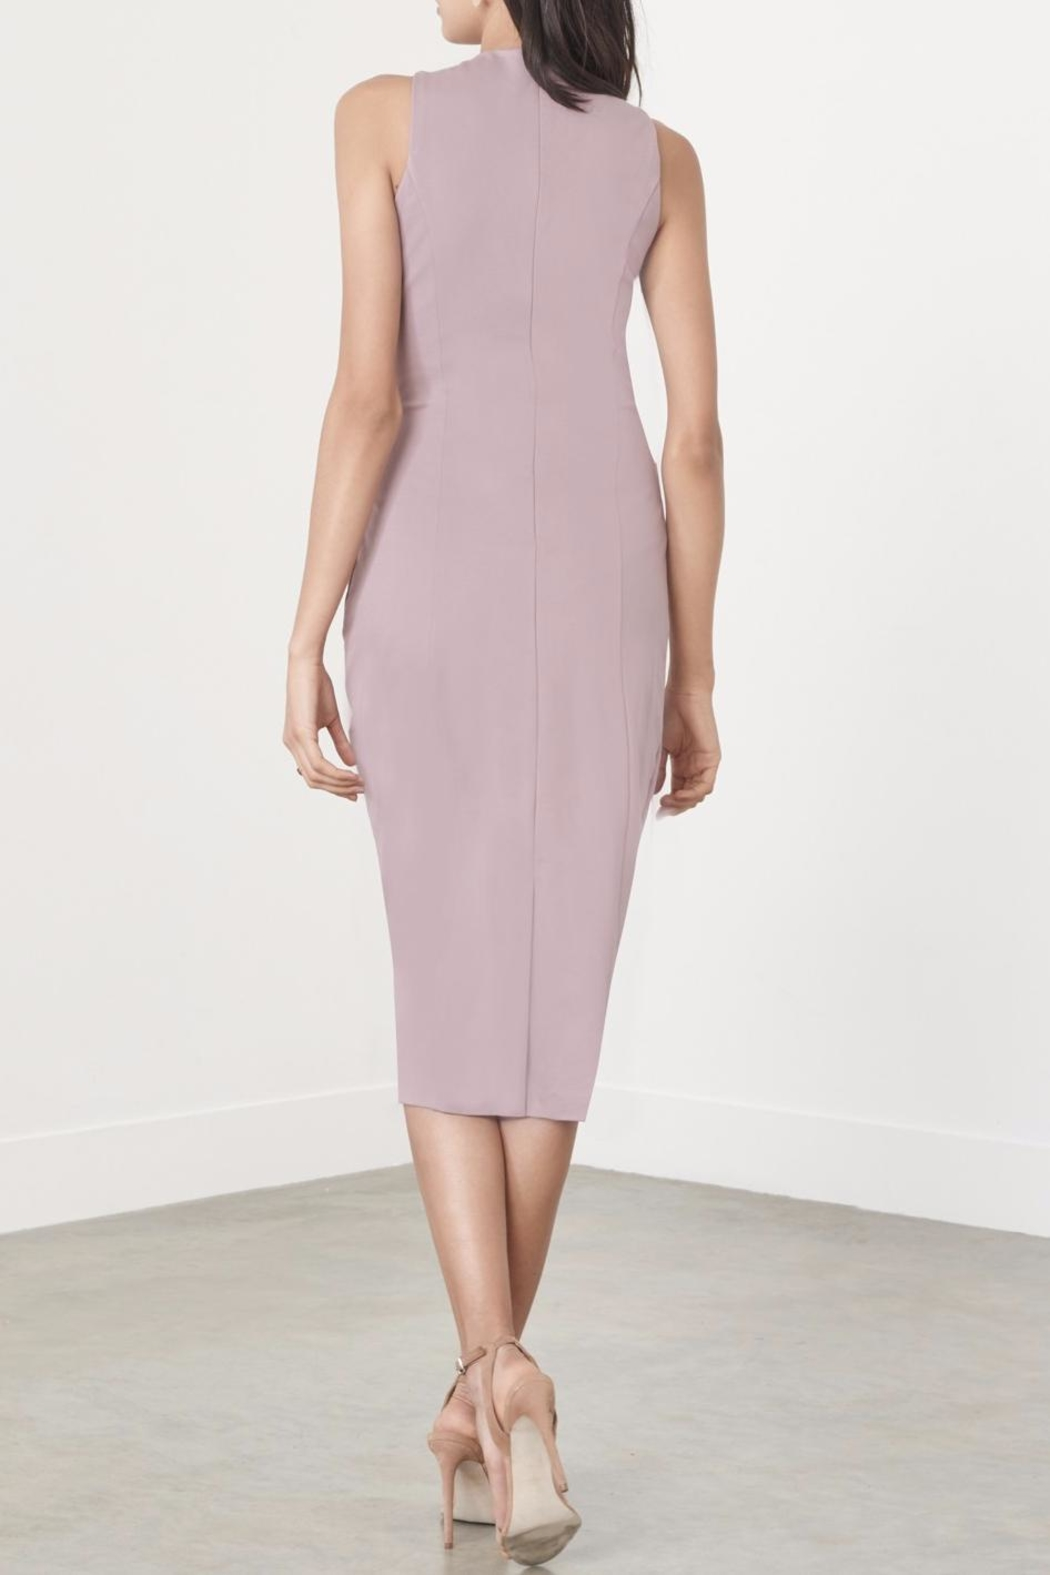 LAVISH ALICE Mauve Metal Ring Dress - Back Cropped Image